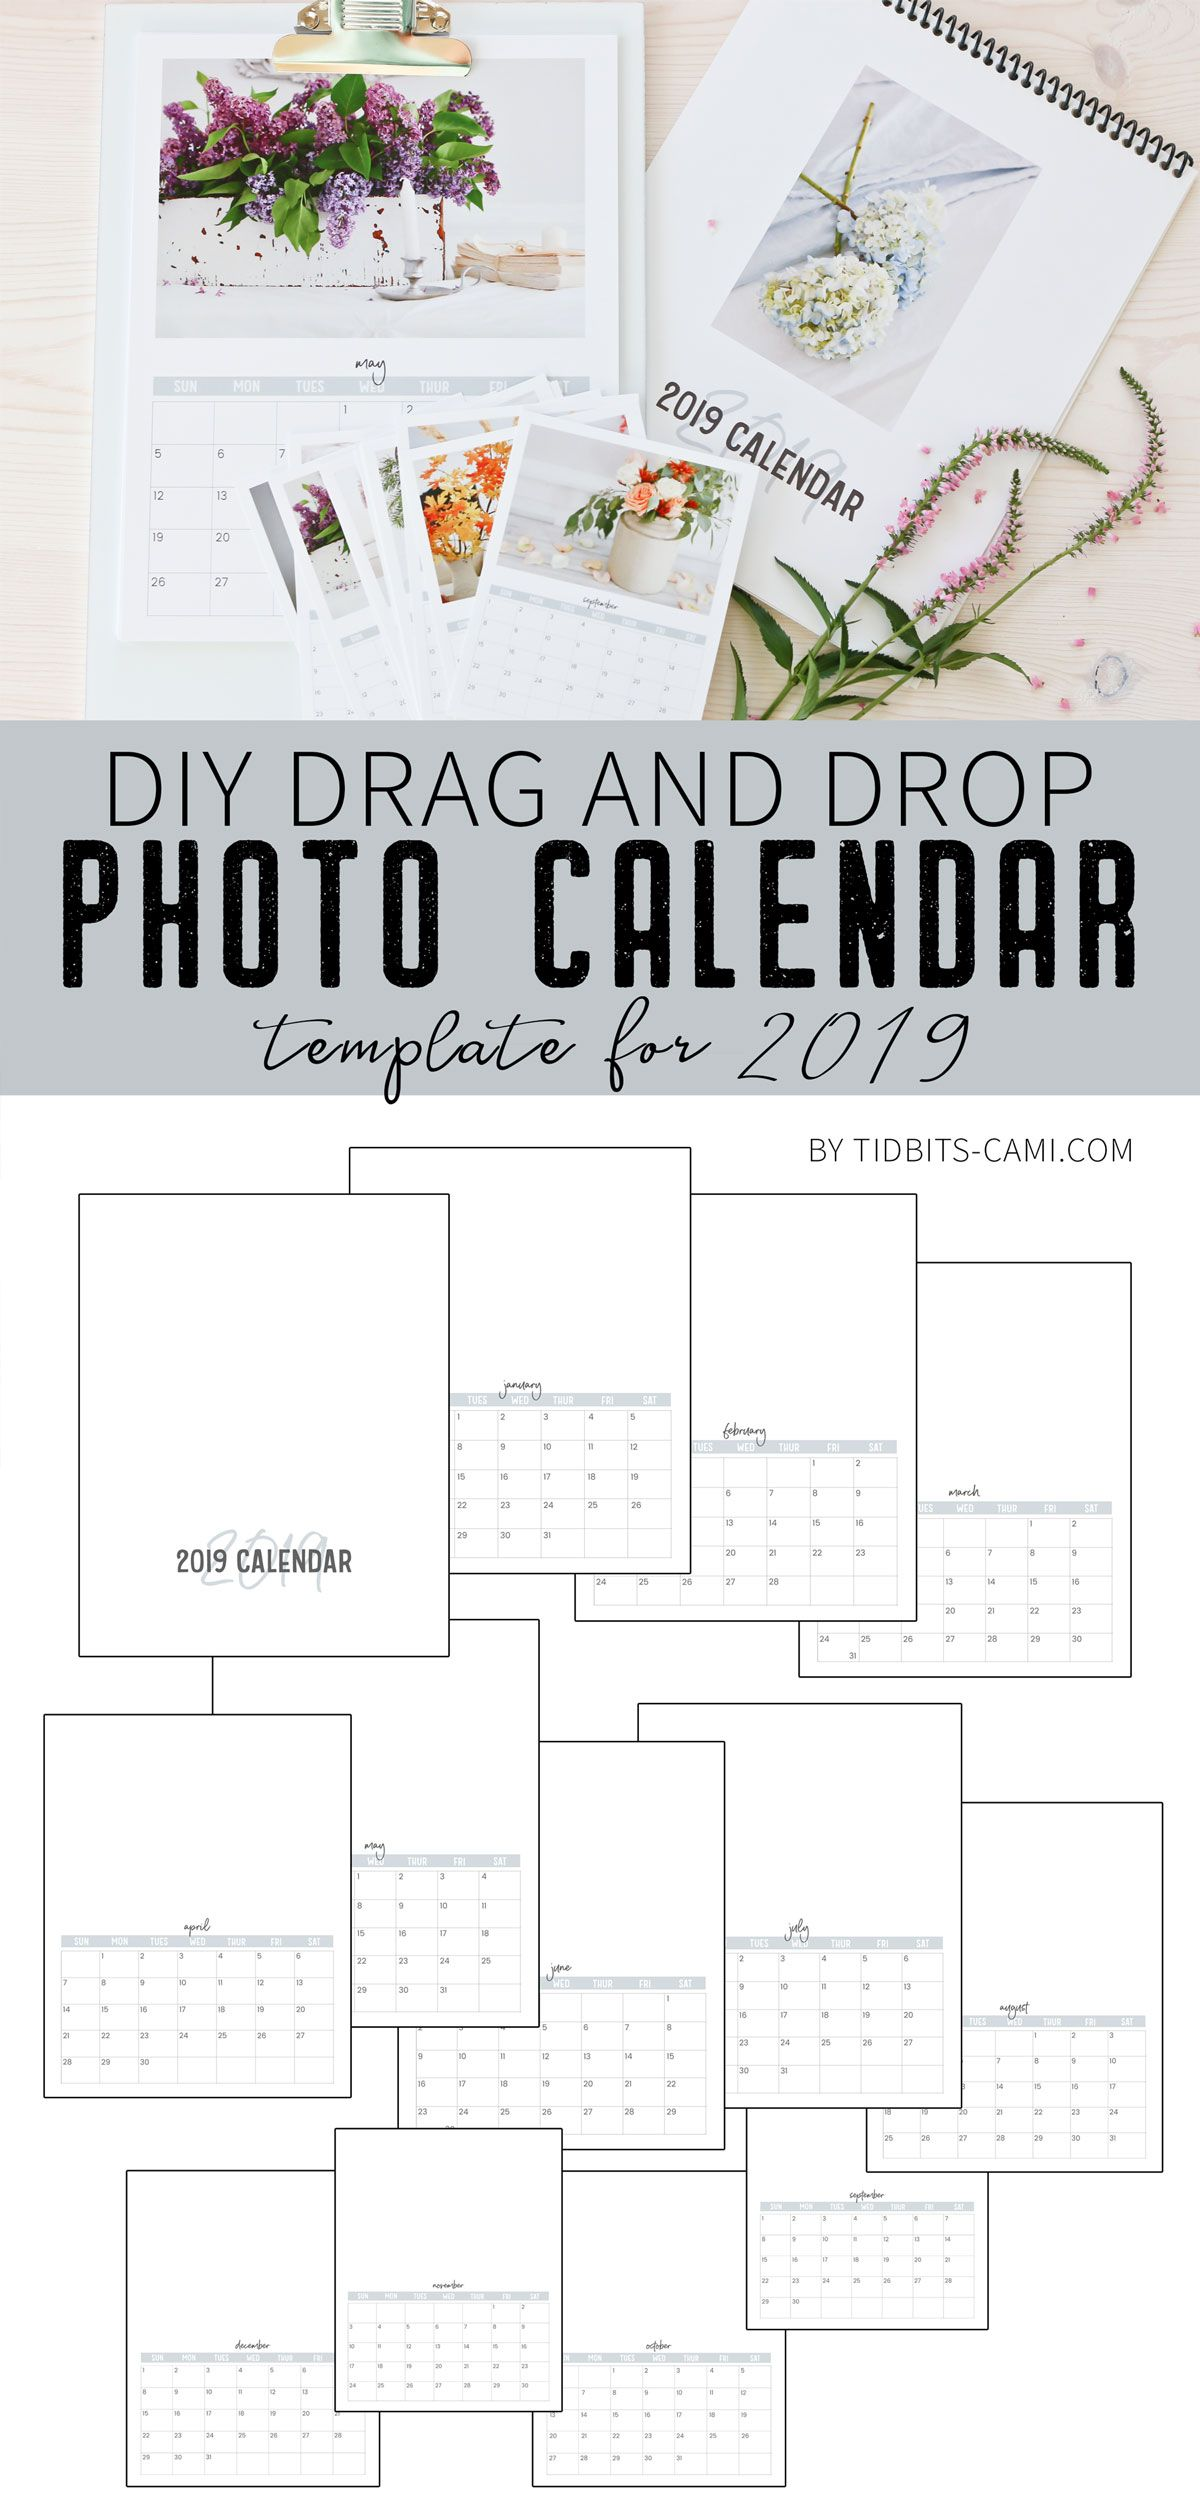 Diy Drag And Drop Photo Calendar Template Place Photos Where You Want Print How And Where You Want Photo Calendar Diy Diy Calendar Photo Diy Calendar Binding